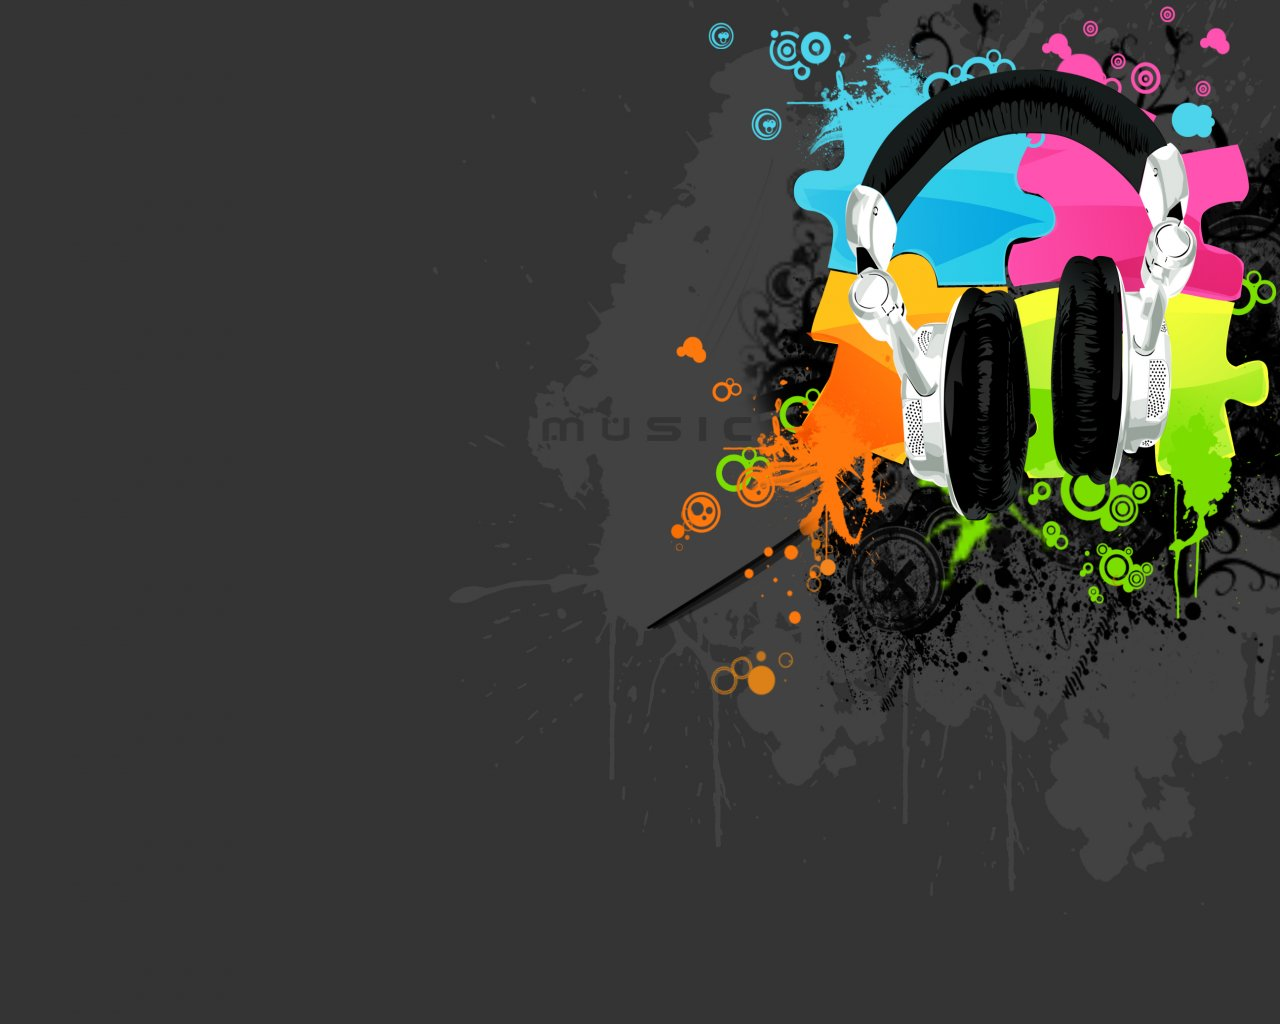 Abstract Wallpapers HD Music Abstract Wallpapers HD 1280x1024